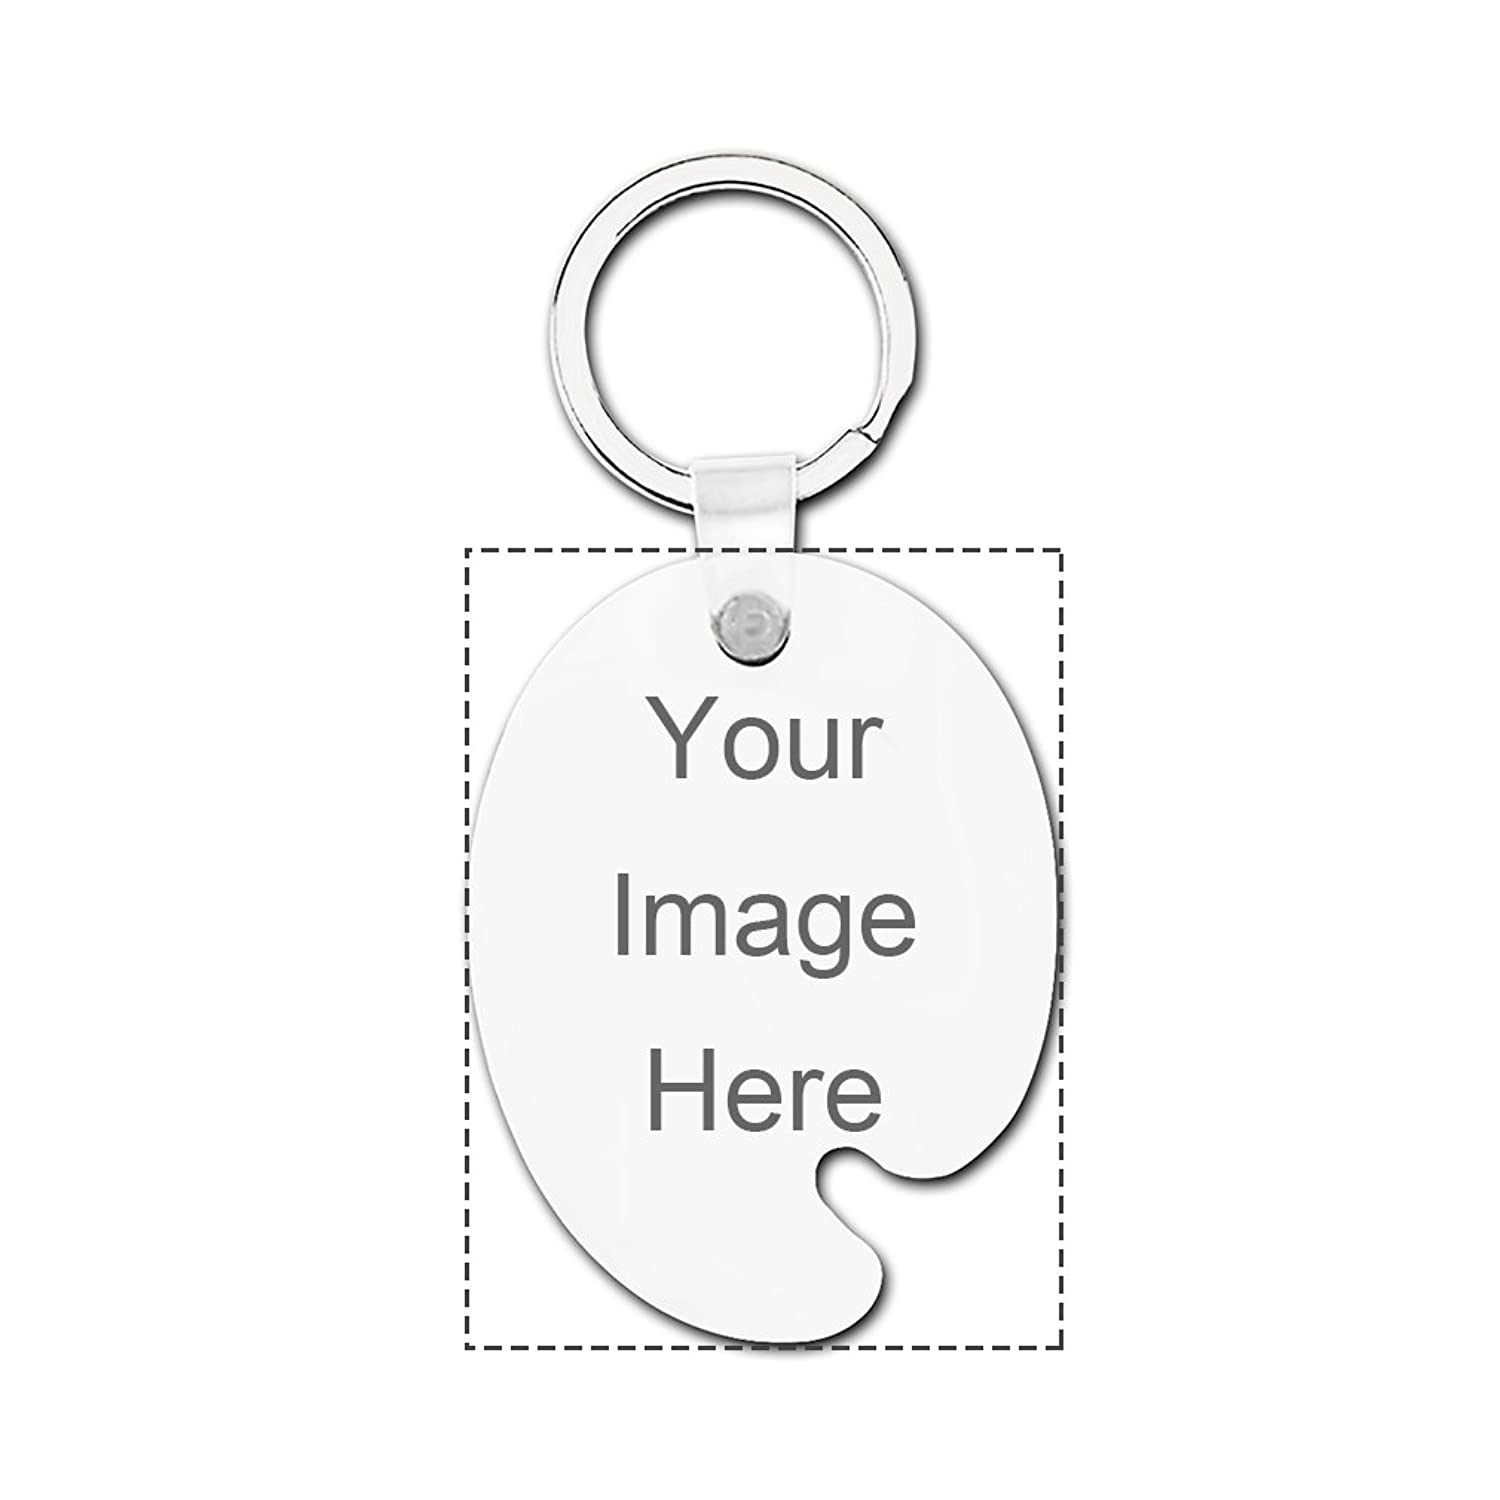 Custom Hardboard Palette Keychain Design Your Own Print Image or Message Keychain Set